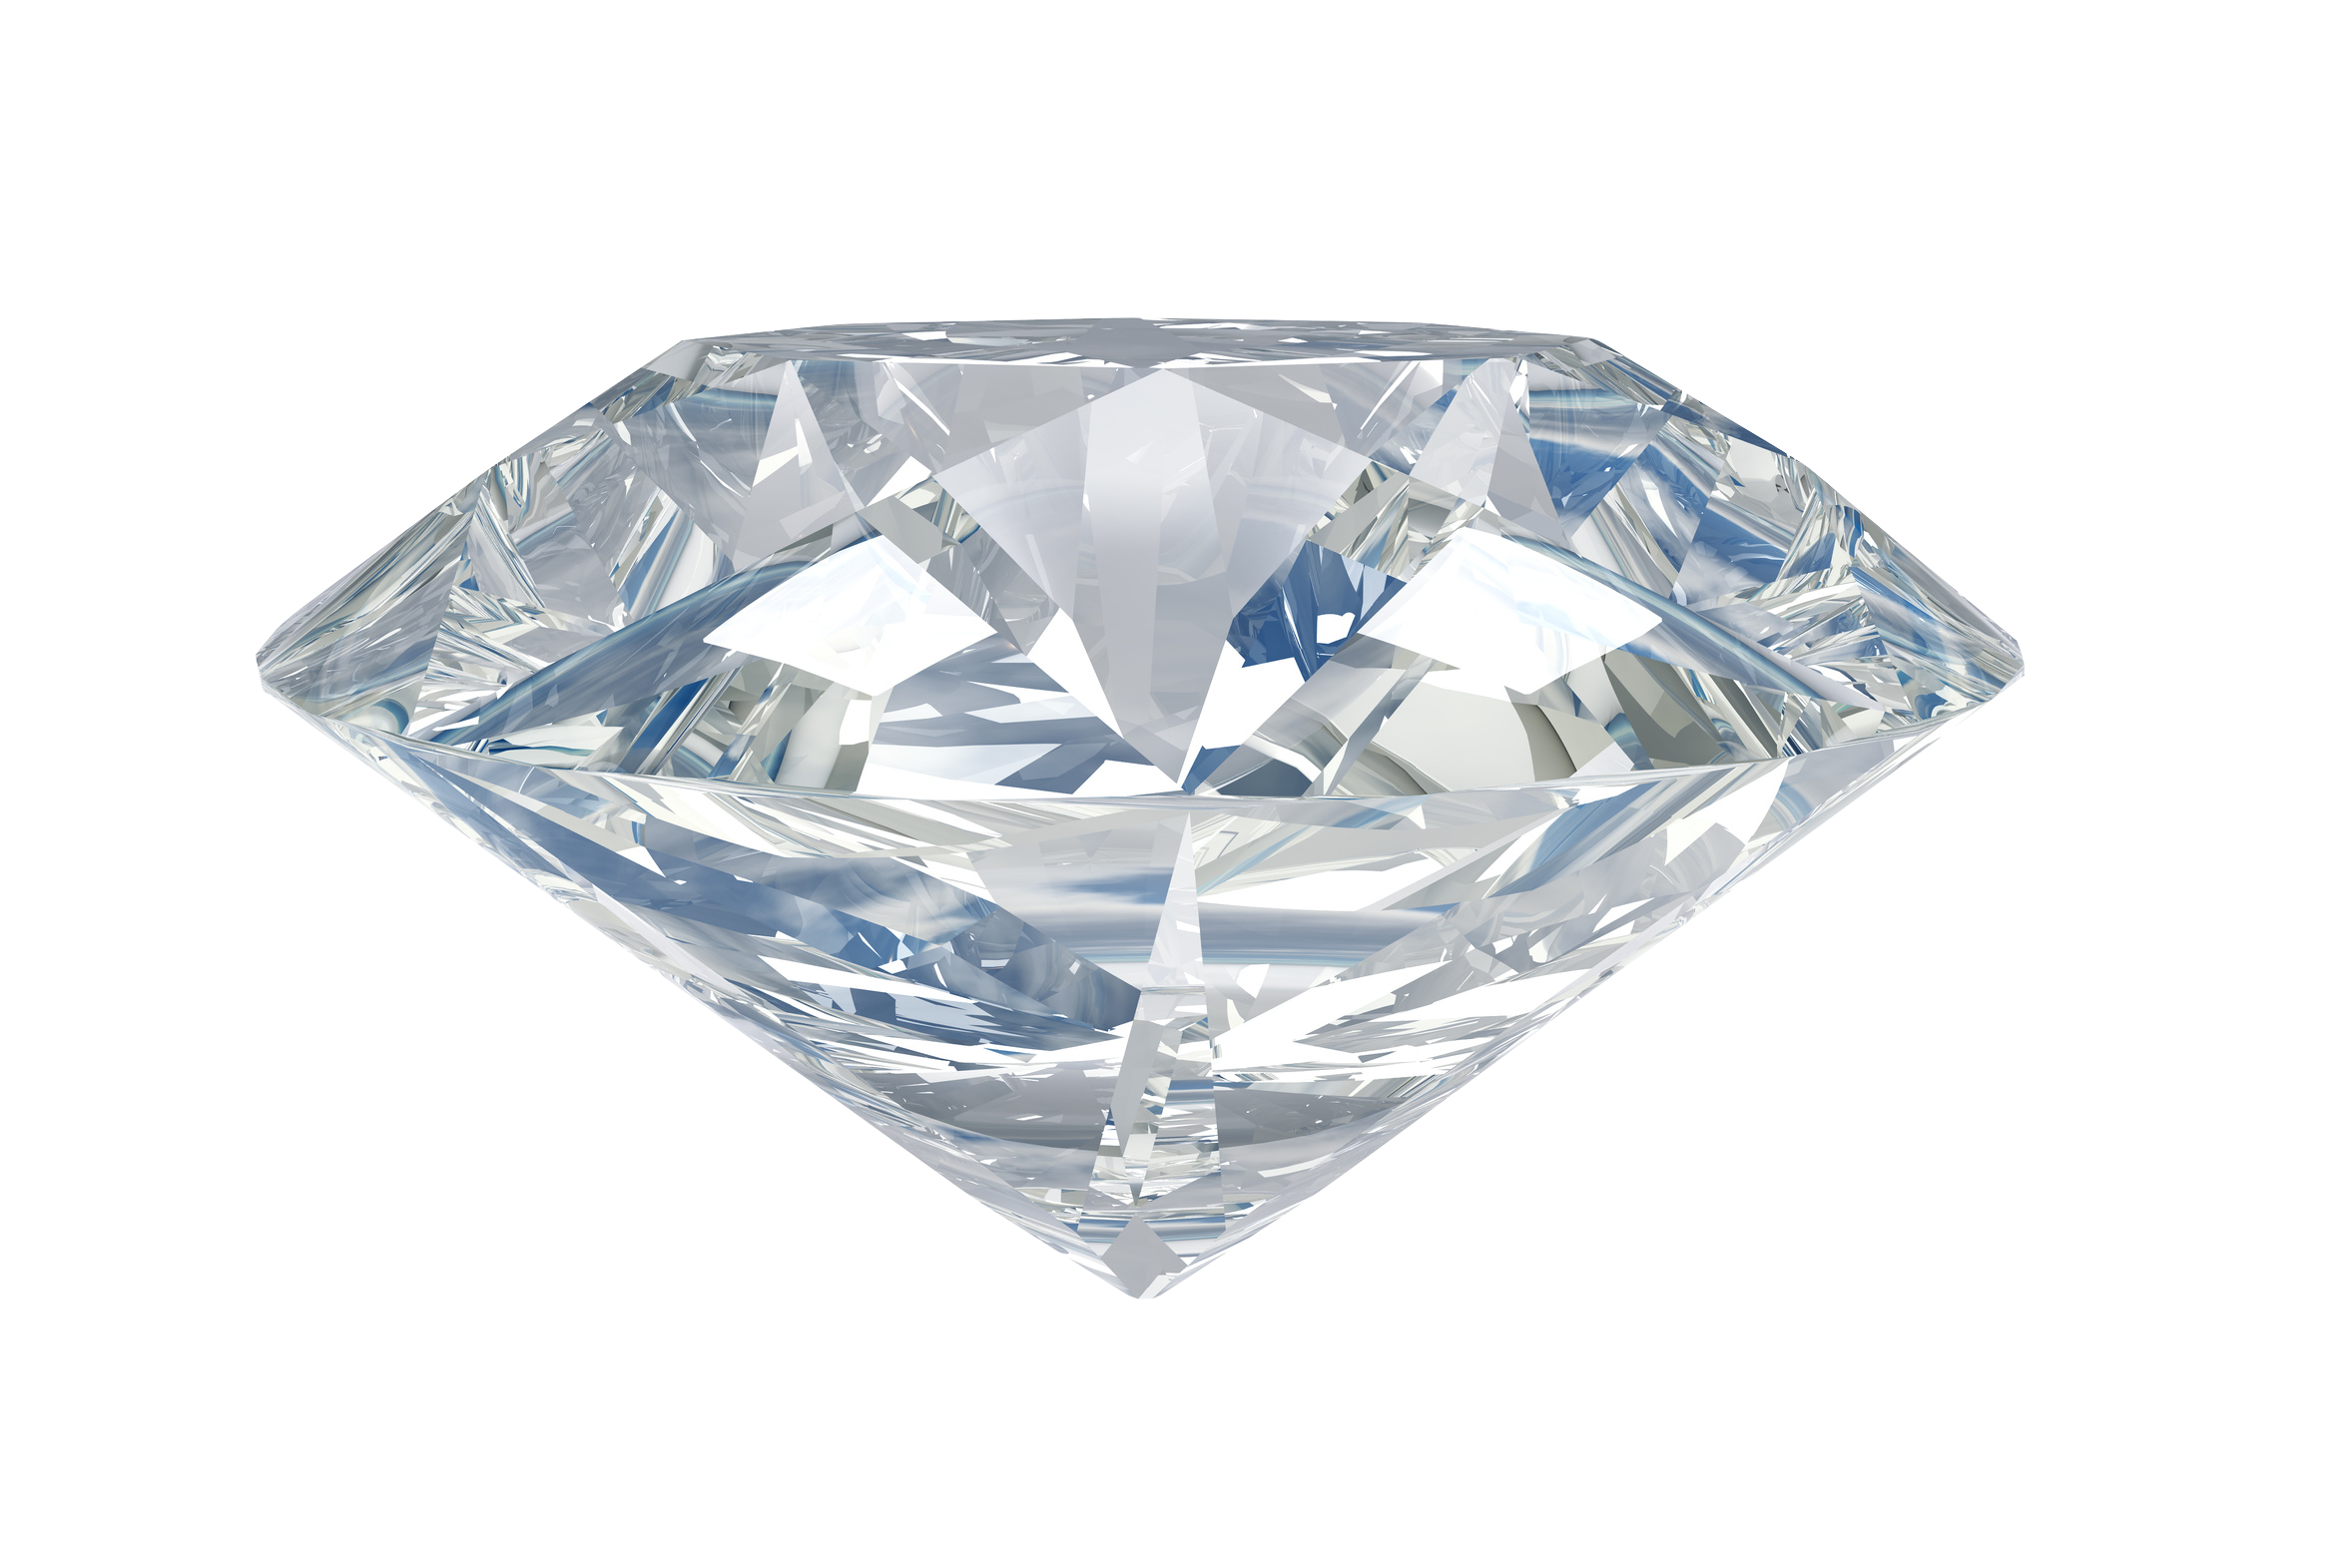 Crown and diamond clipart graphic library download Diamond clipart real - Graphics - Illustrations - Free Download on ... graphic library download